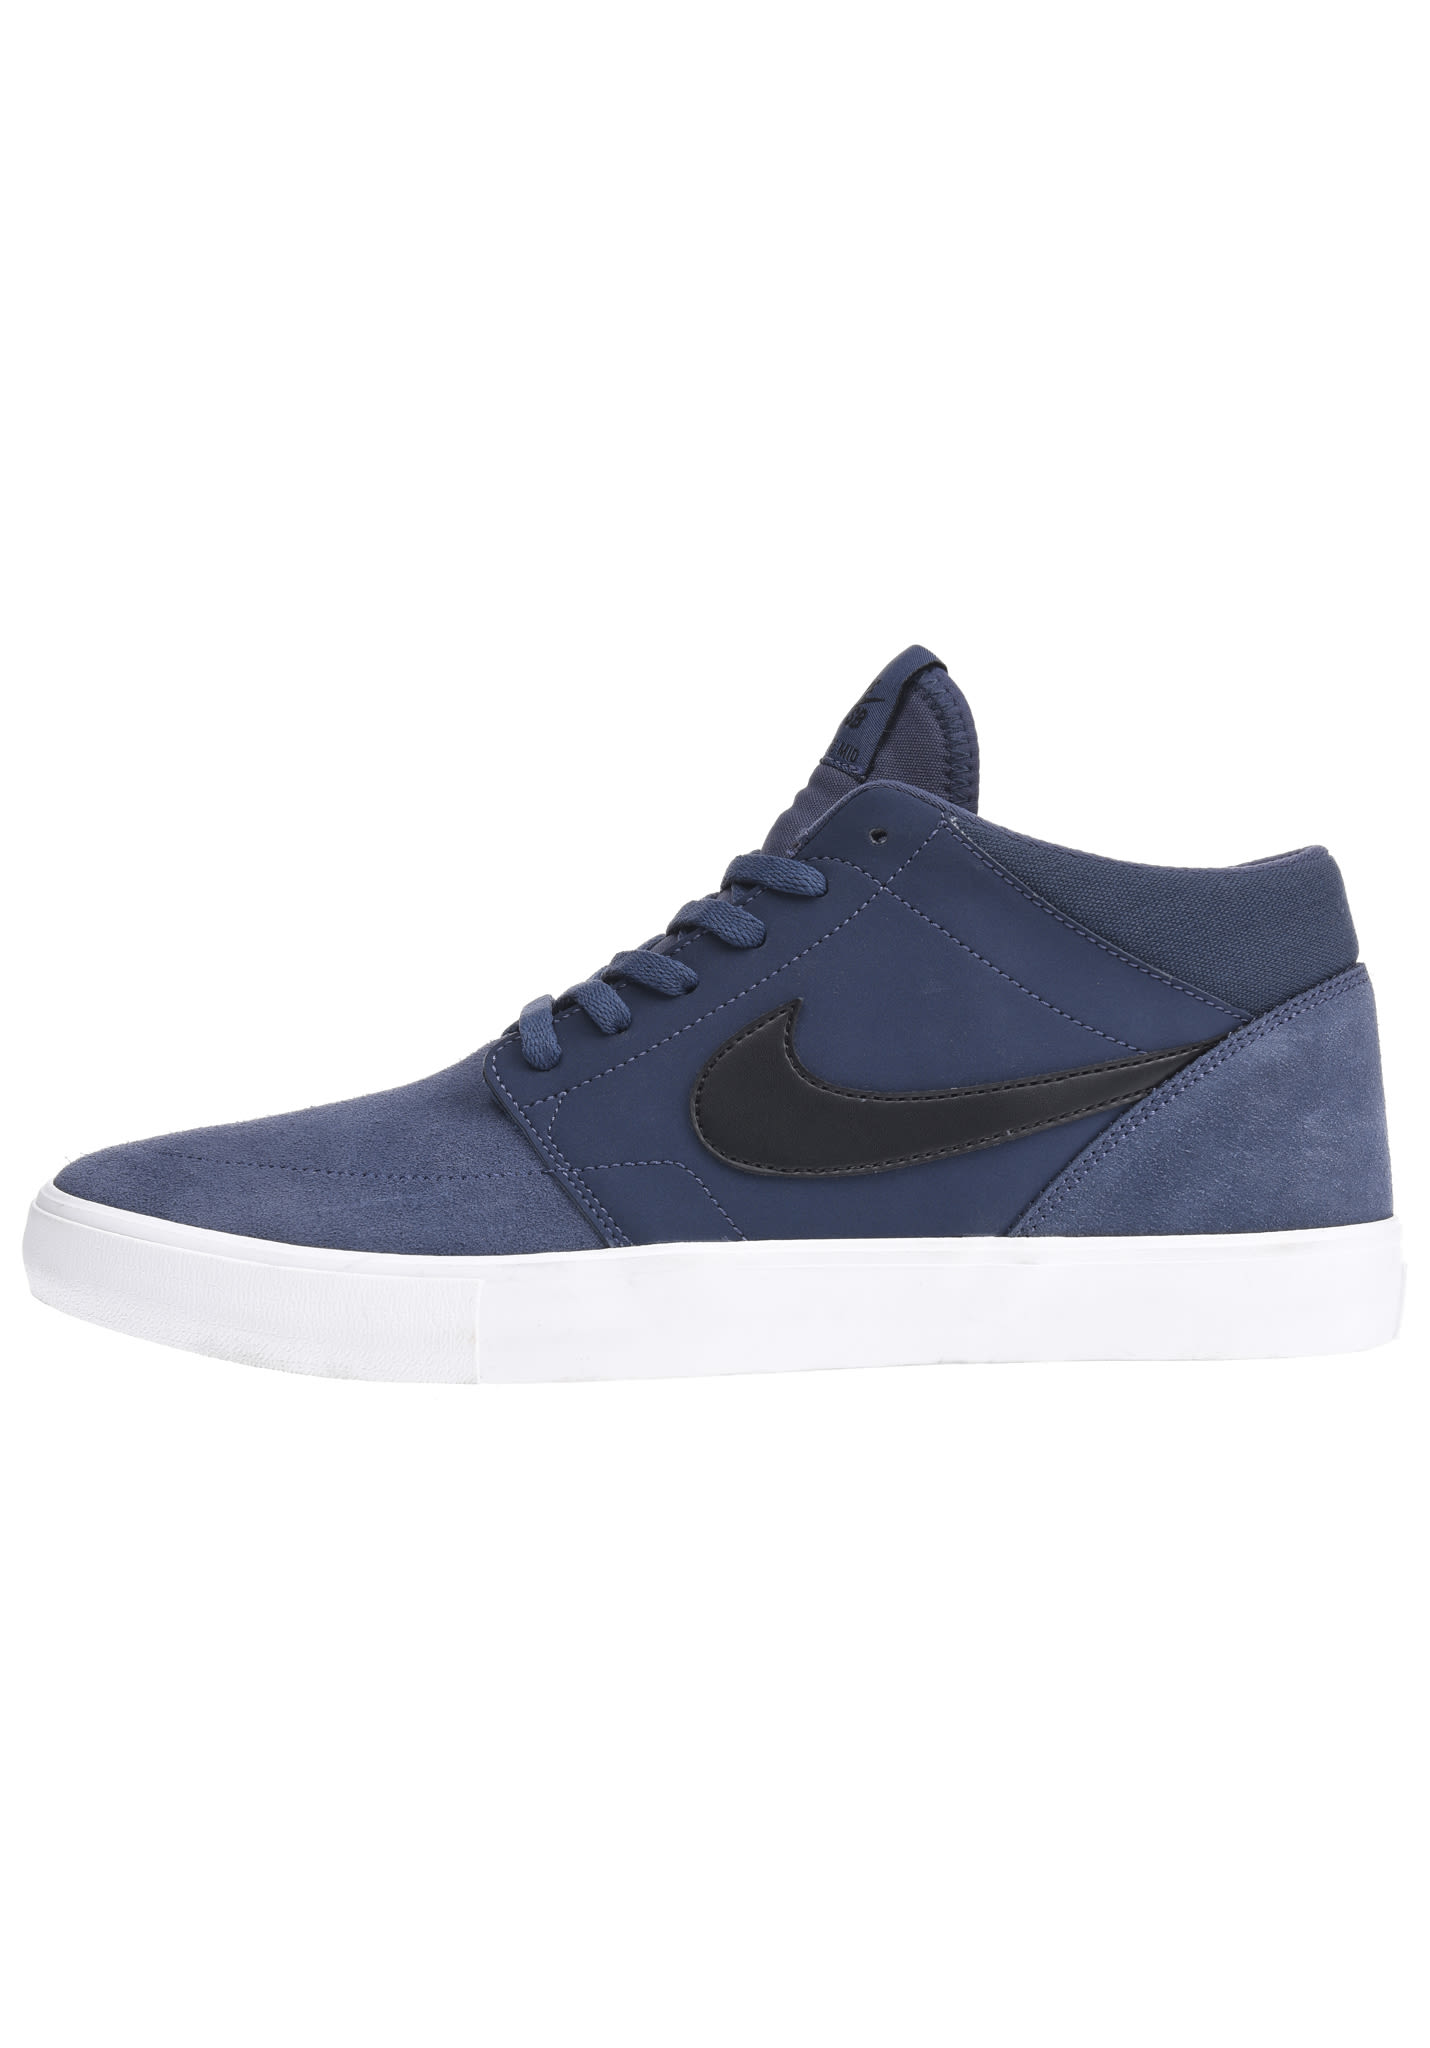 329c220fc094 NIKE SB Portmore II Solar Mid - Sneakers for Men - Blue - Planet Sports